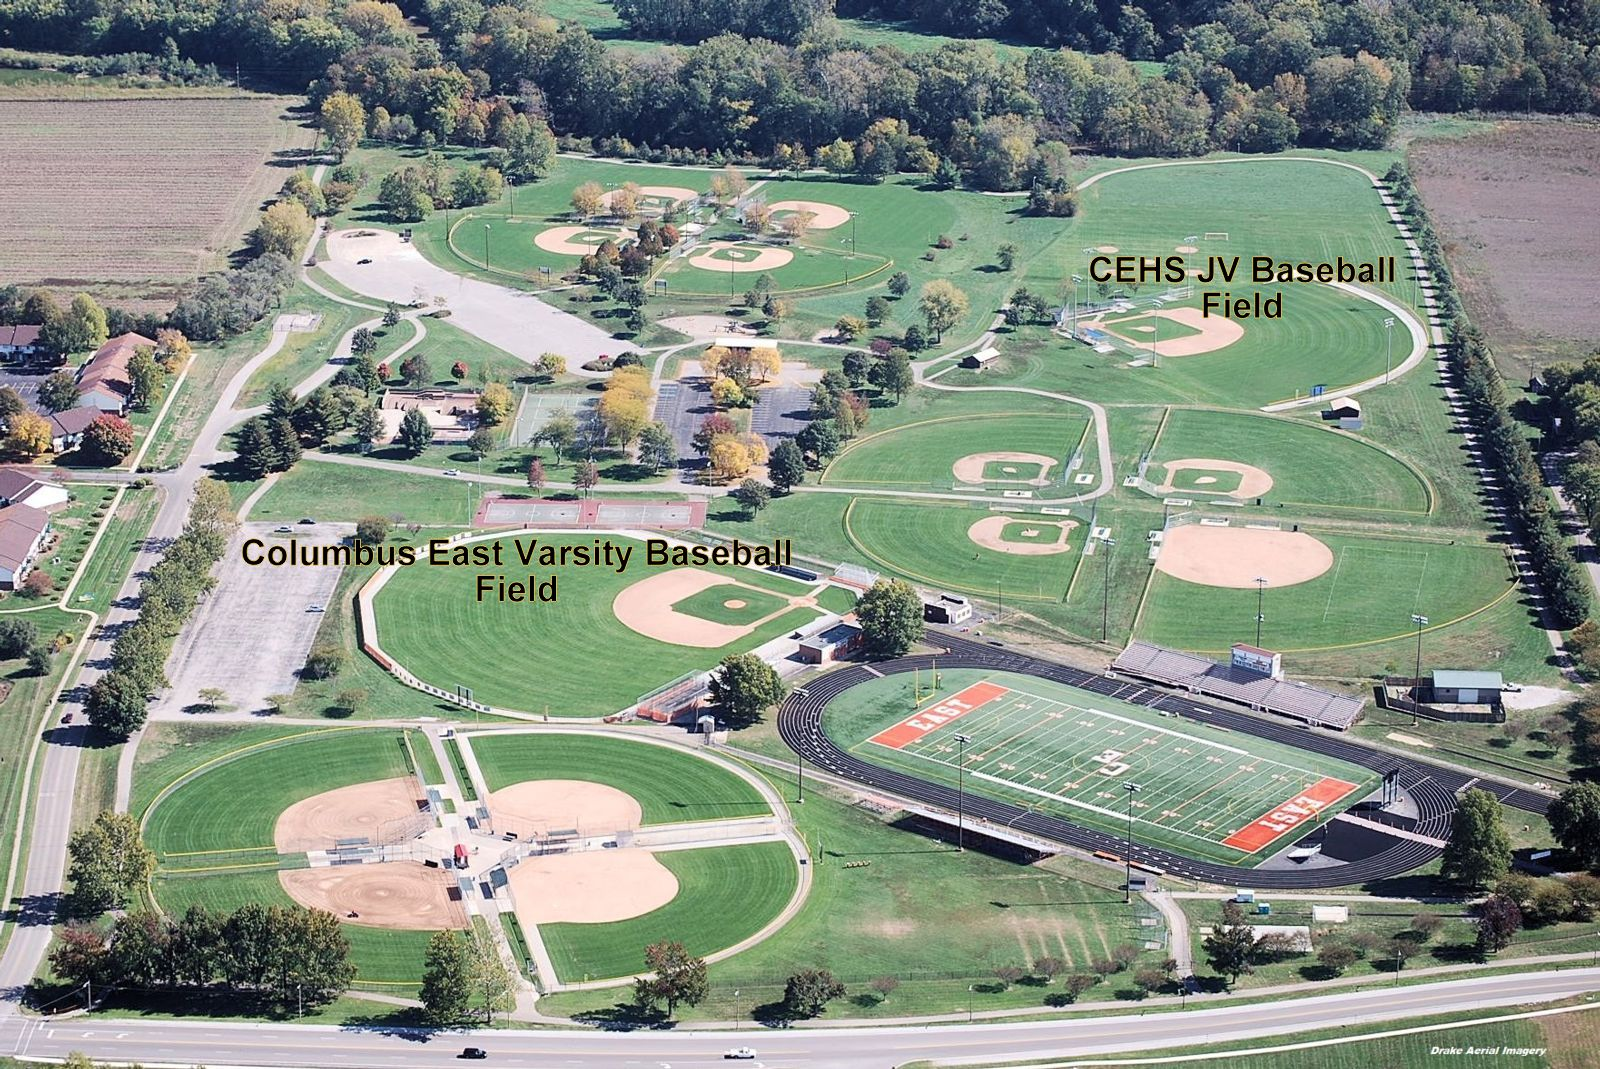 CEHS Upper & Lower Baseball Diamonds